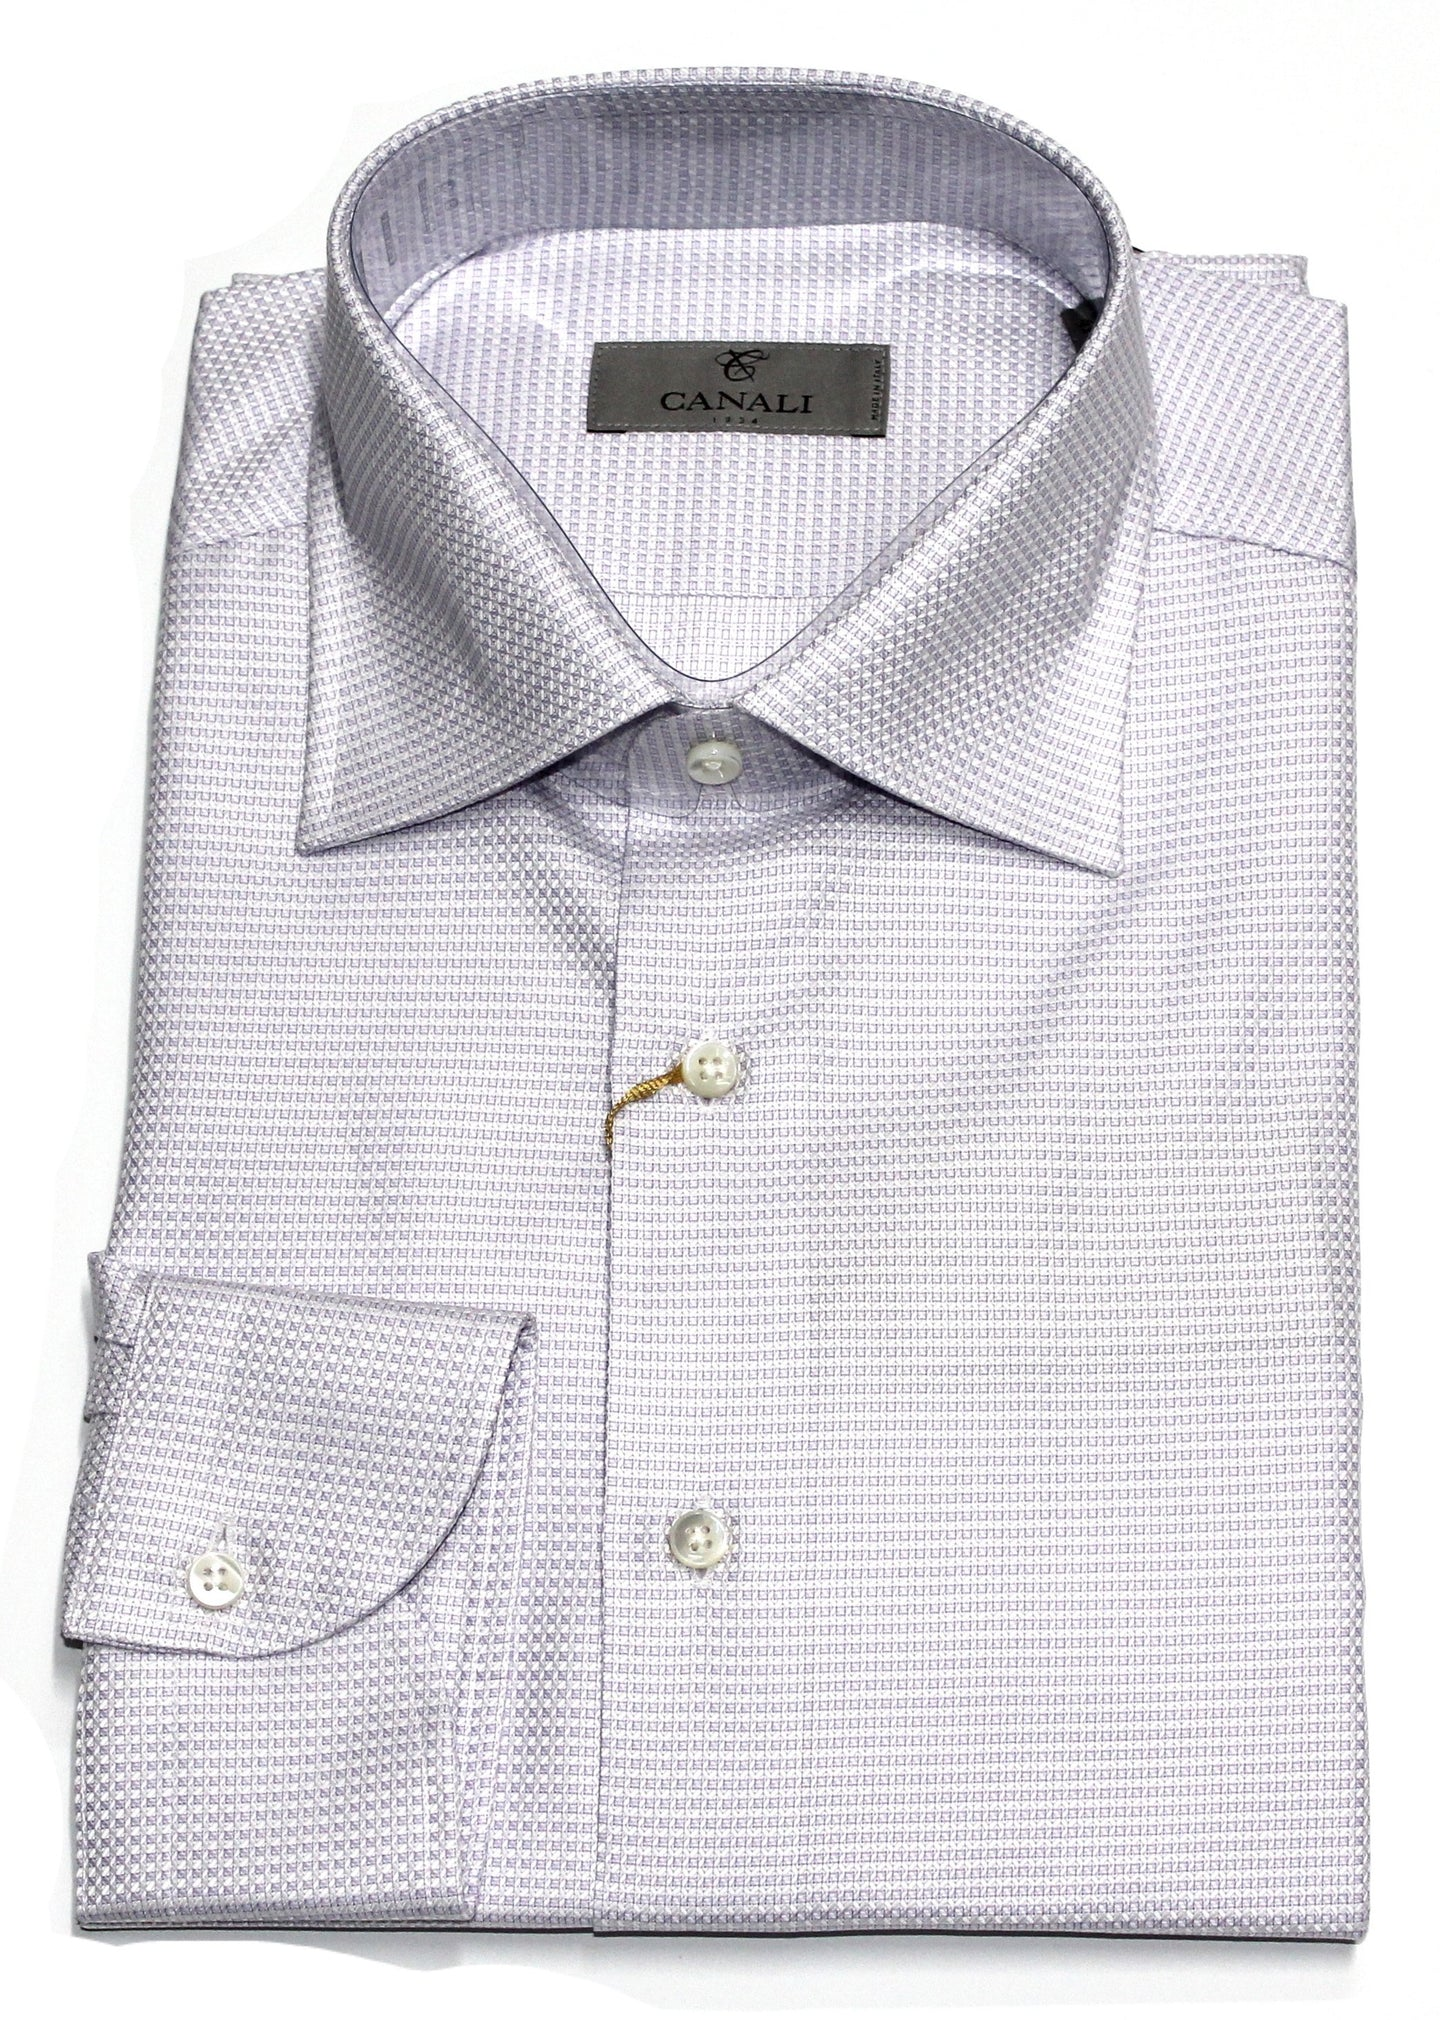 Canali, Cotton Shirt Slim - Lilac